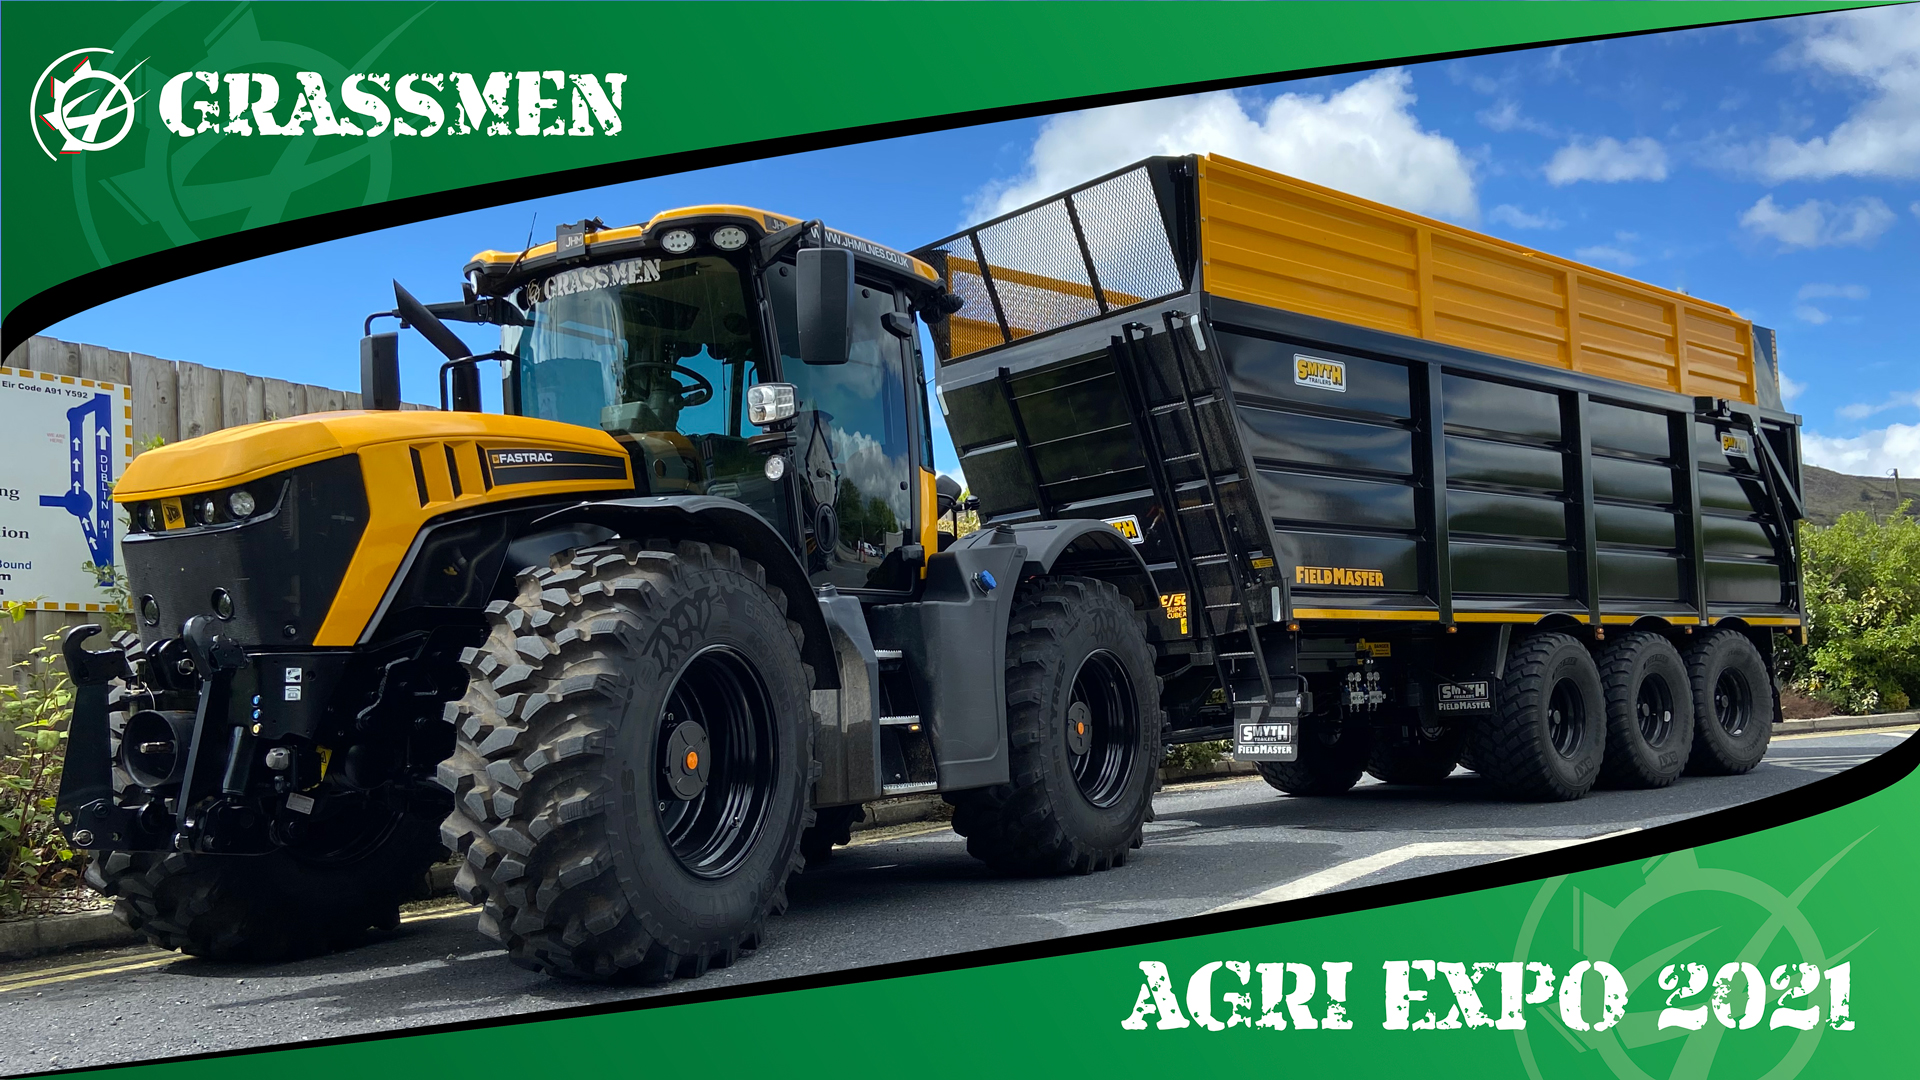 SMYTH TRAILERS - OUR NEW TRAILER - GRASSMEN AGRI EXPO DAY 1